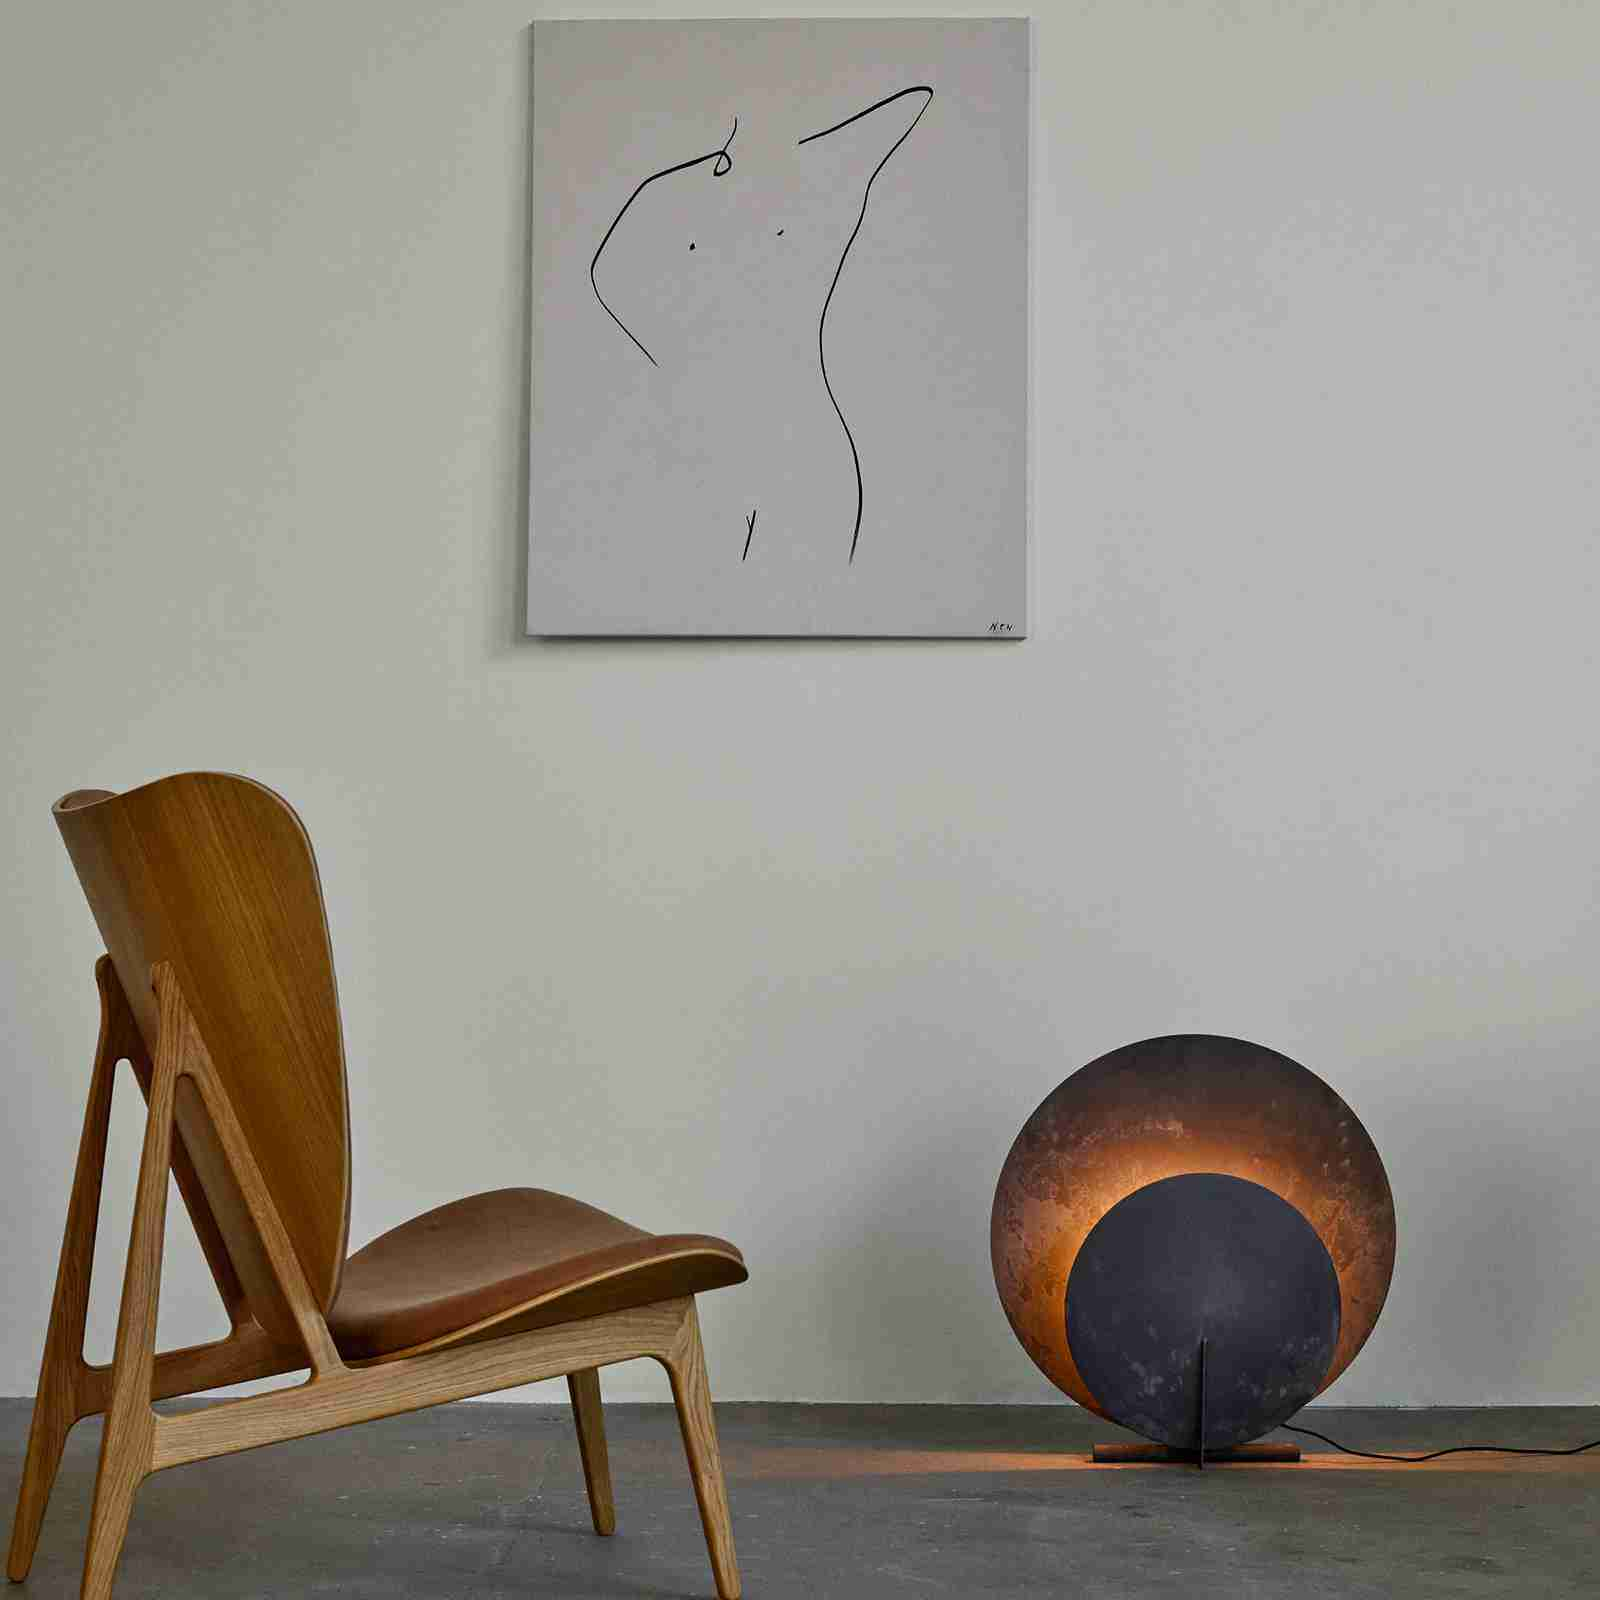 Elephant chair and AD floorlamp